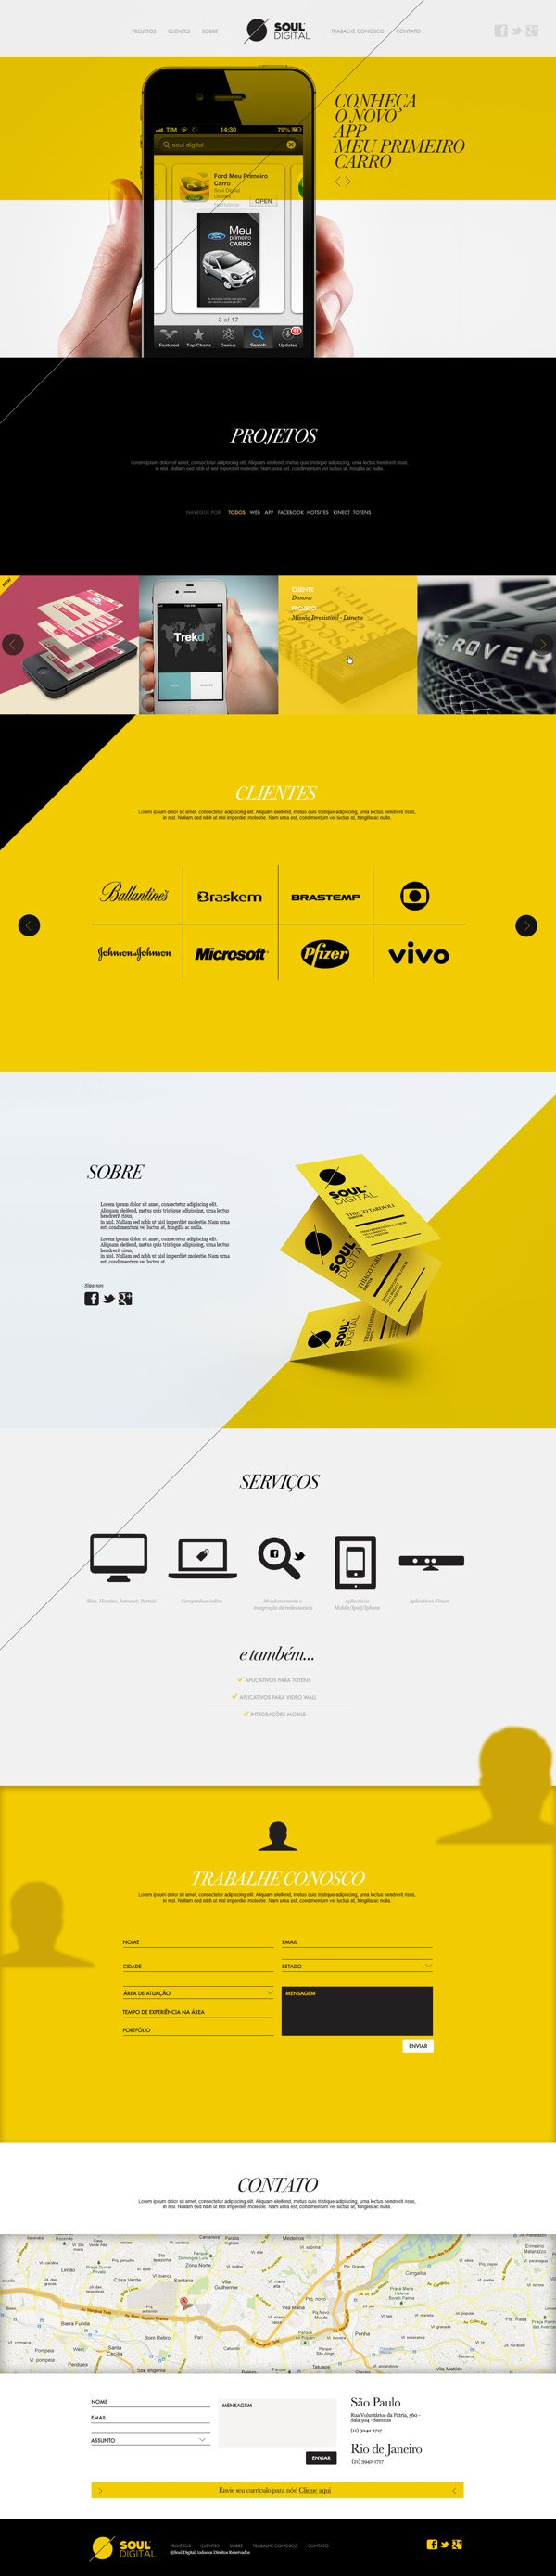 Soul Digital by Isabela Rodrigues, via Behance web design